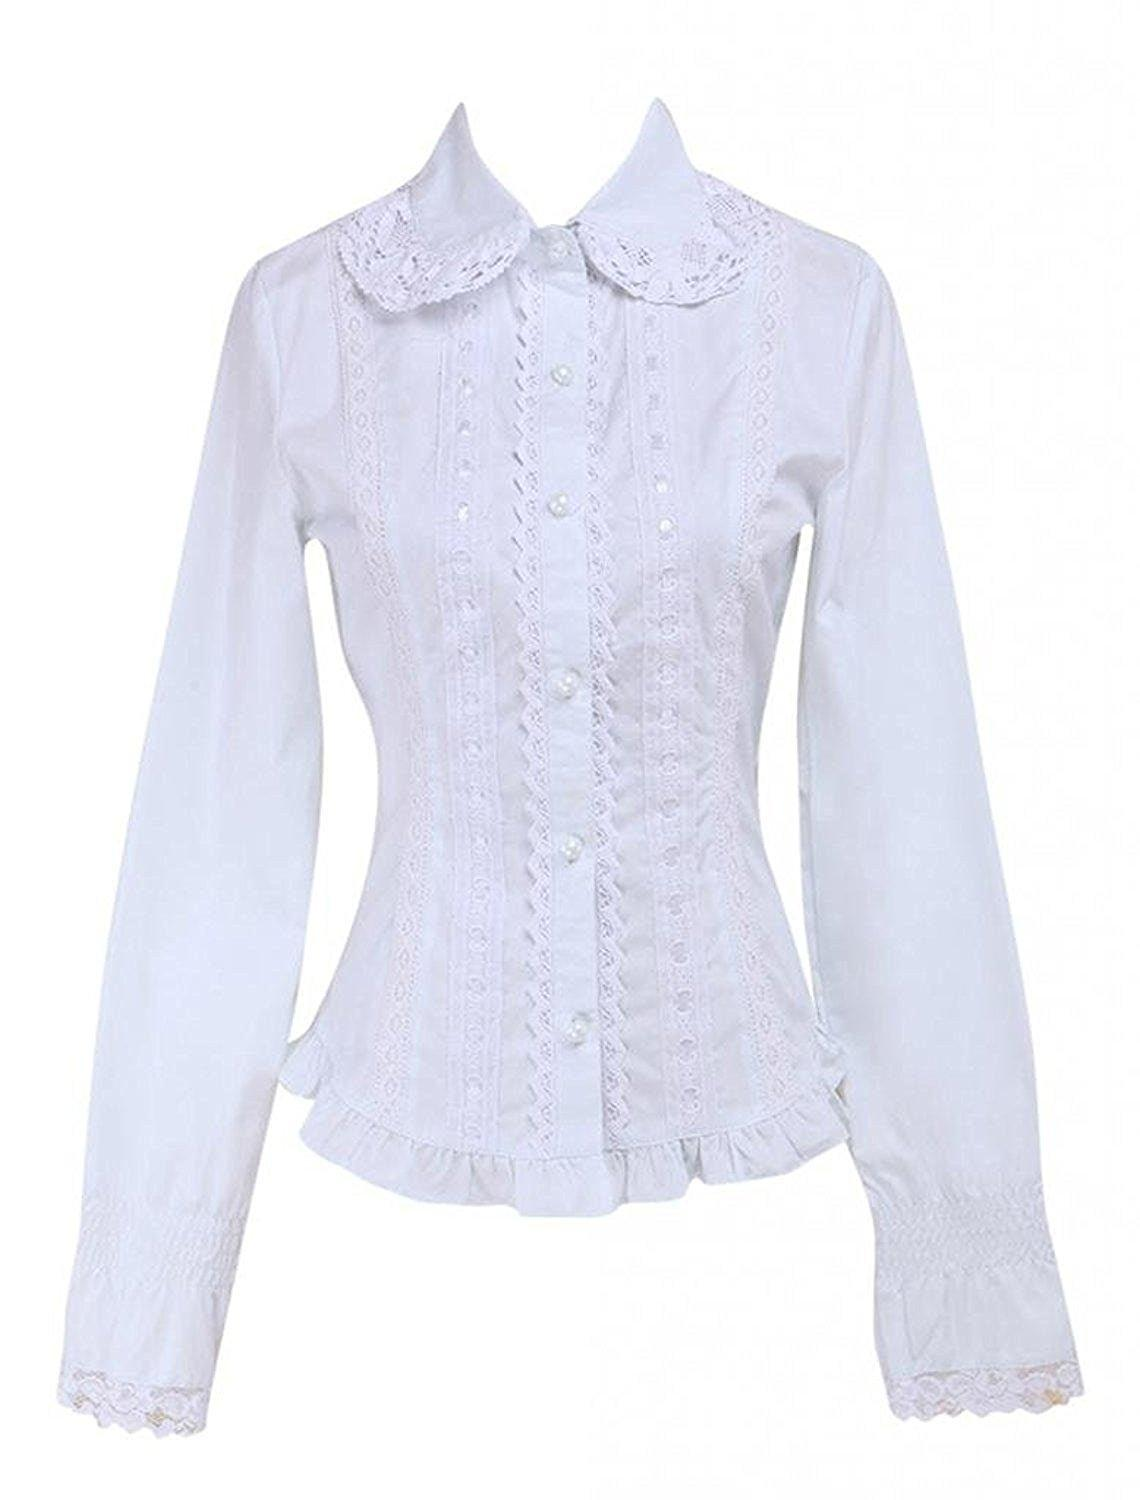 Ainclu Womens Cotton White Lace Long Sleeves Cotton Lolita Blouse